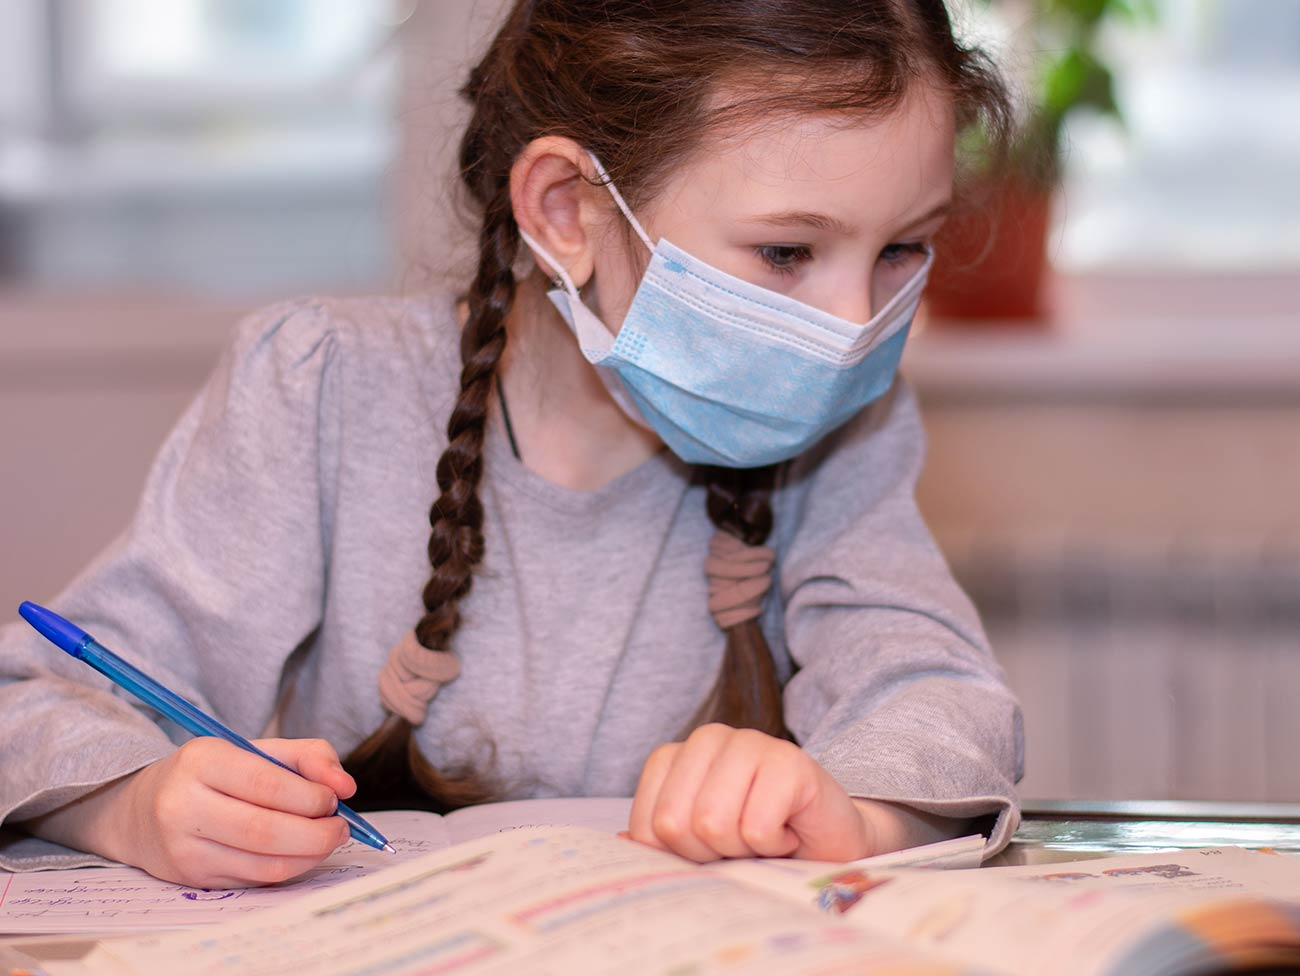 young girl wearing face mask seated at table doing schoolwork